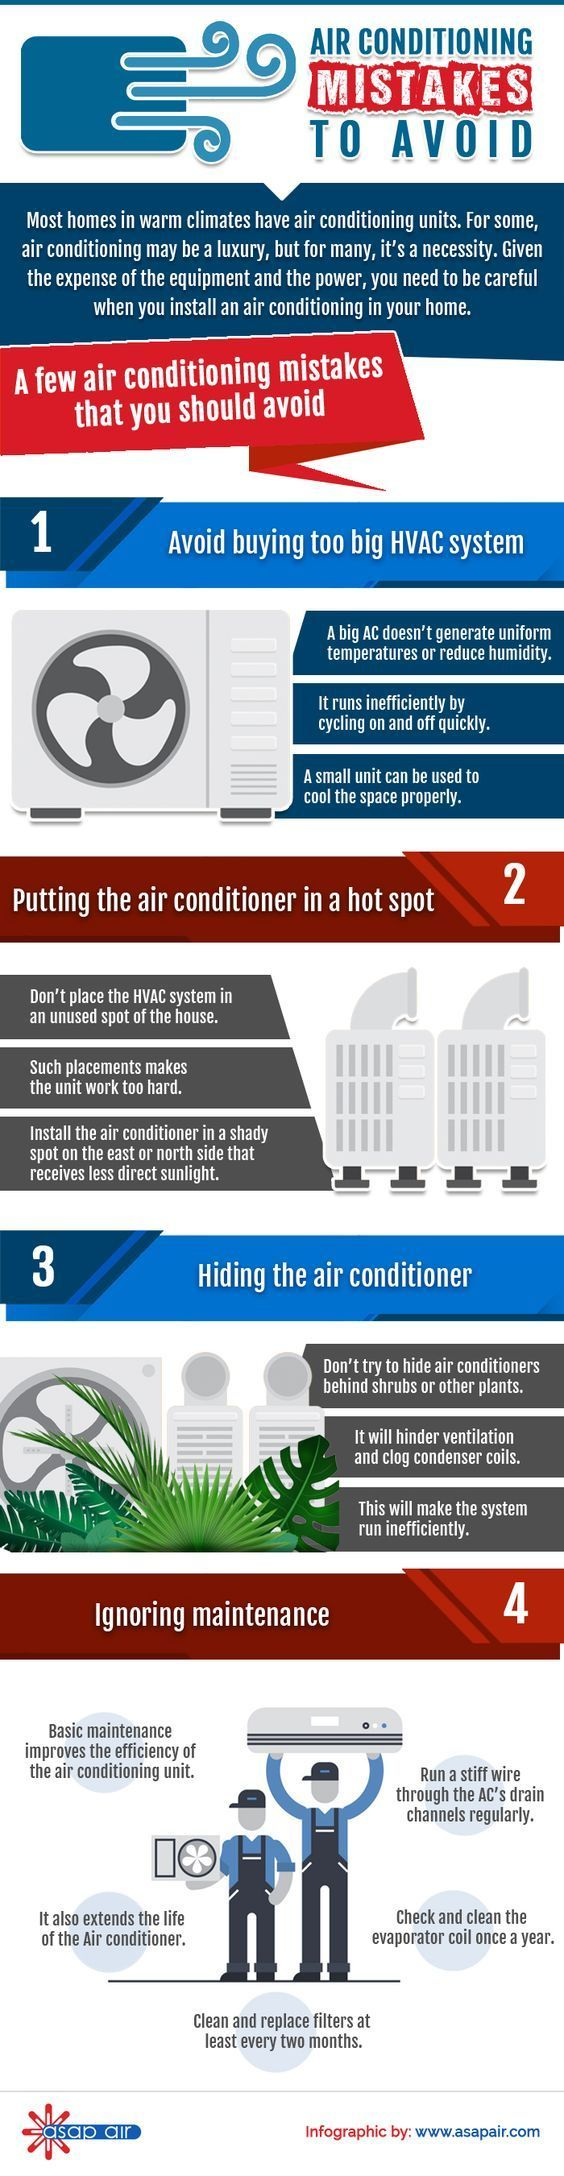 Air Conditioning Mistakes To Avoid (infographic)